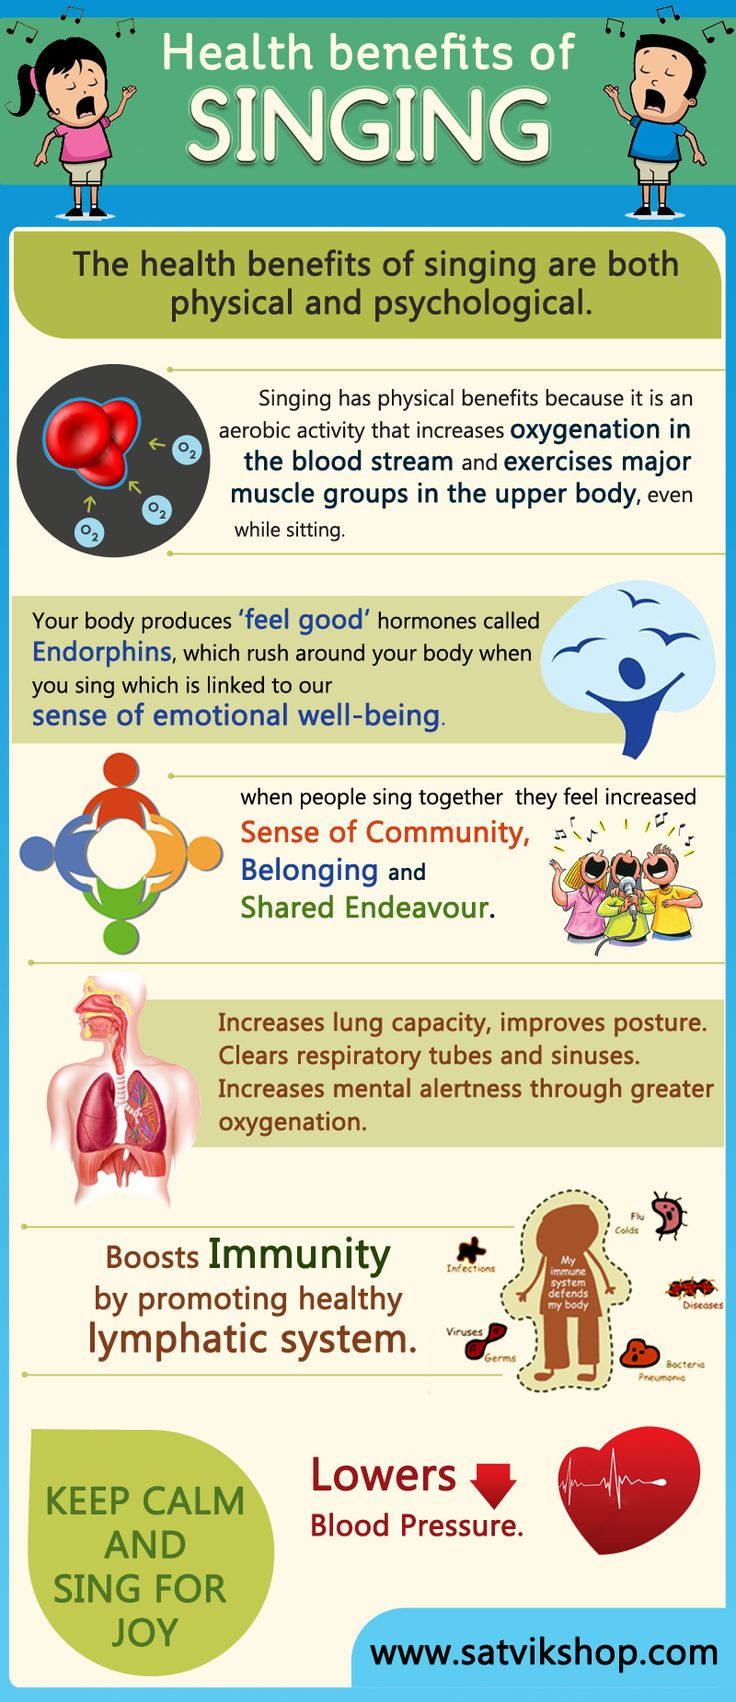 This infographic represents the various health benefits of singing, including physical as well as mental benefits.